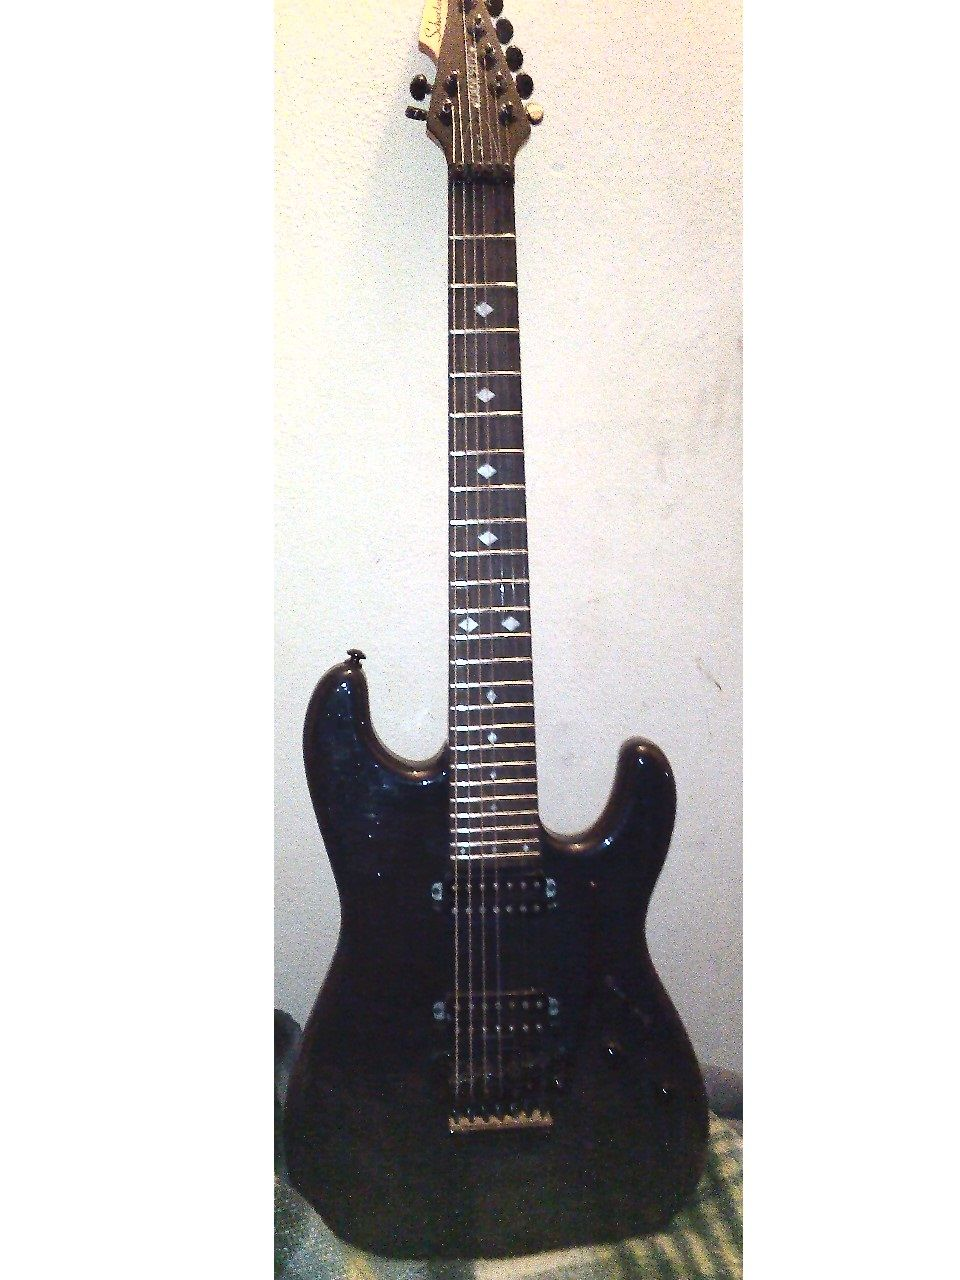 schecter v 7 diamond series 7 string products i love schecter v 7 diamond series 7 string rock starsguitars